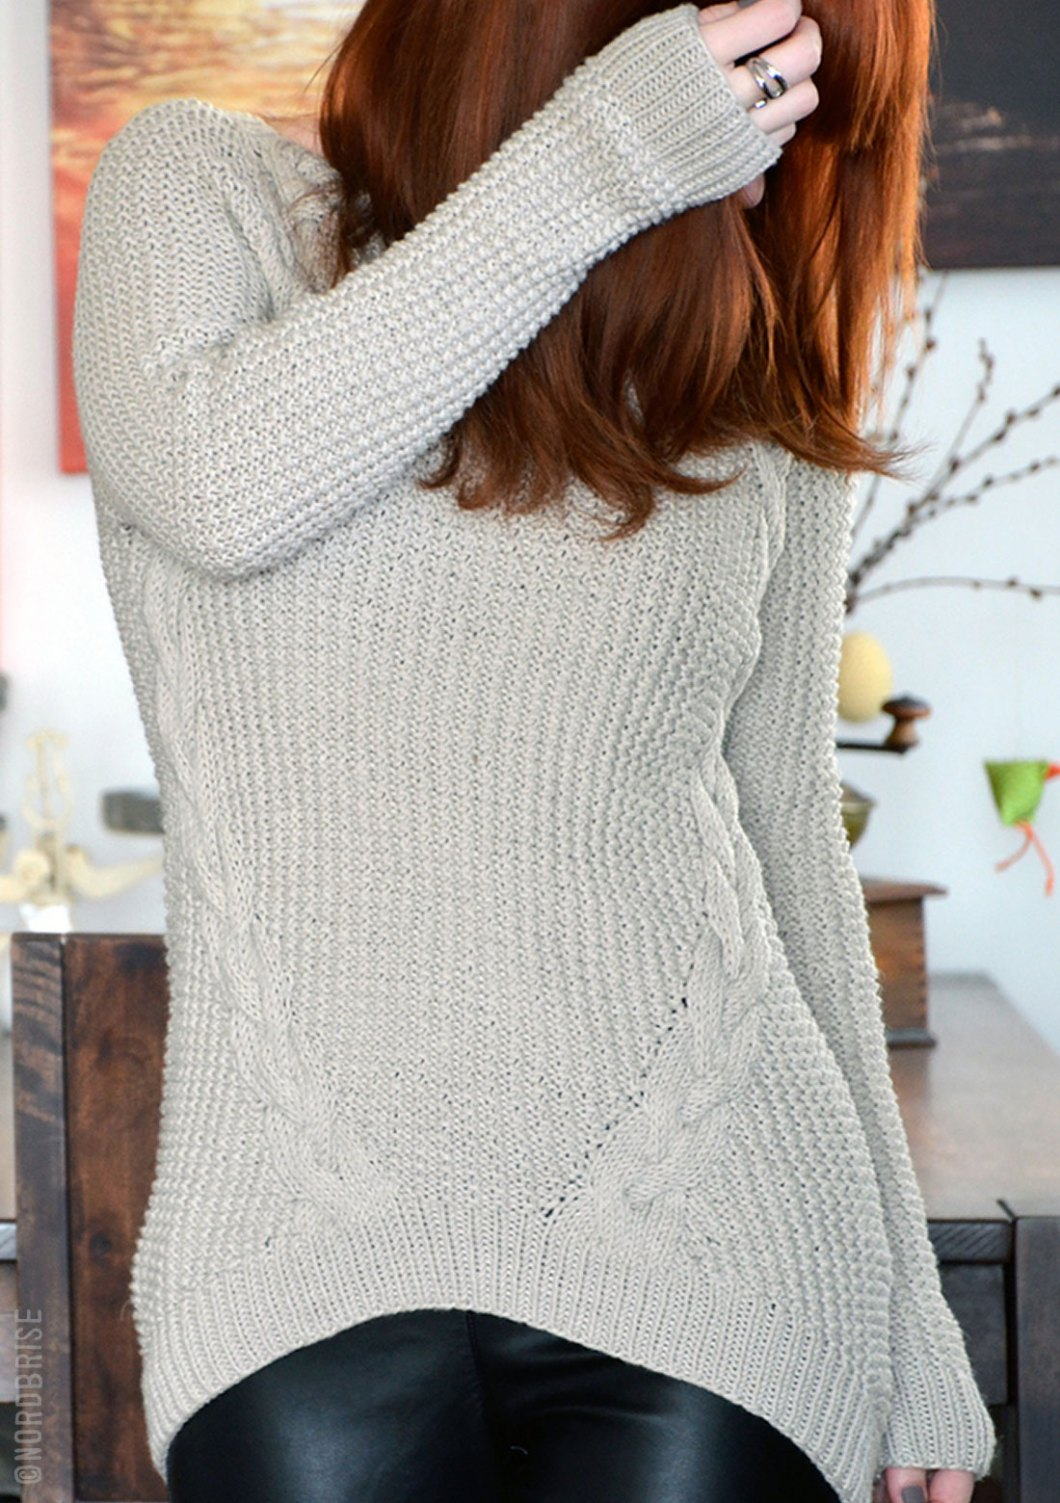 005_sweater_ravelry